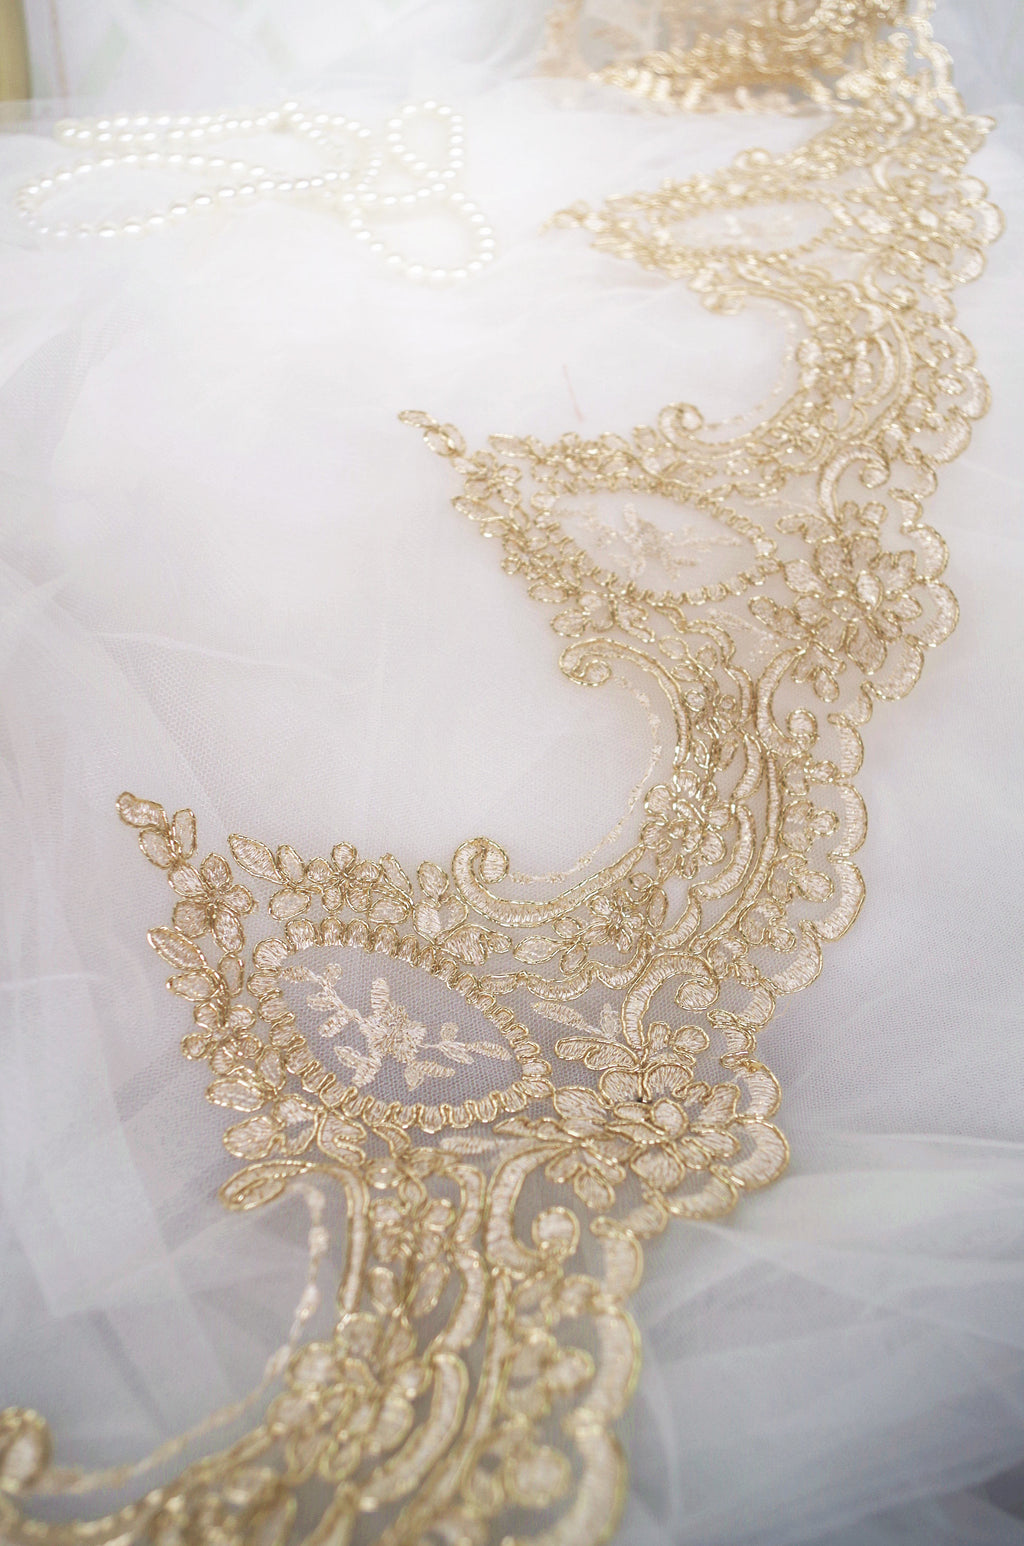 gold alencon lace trim, gold cord lace trim, cording lace trim, embroidered gold lace trim - lace era